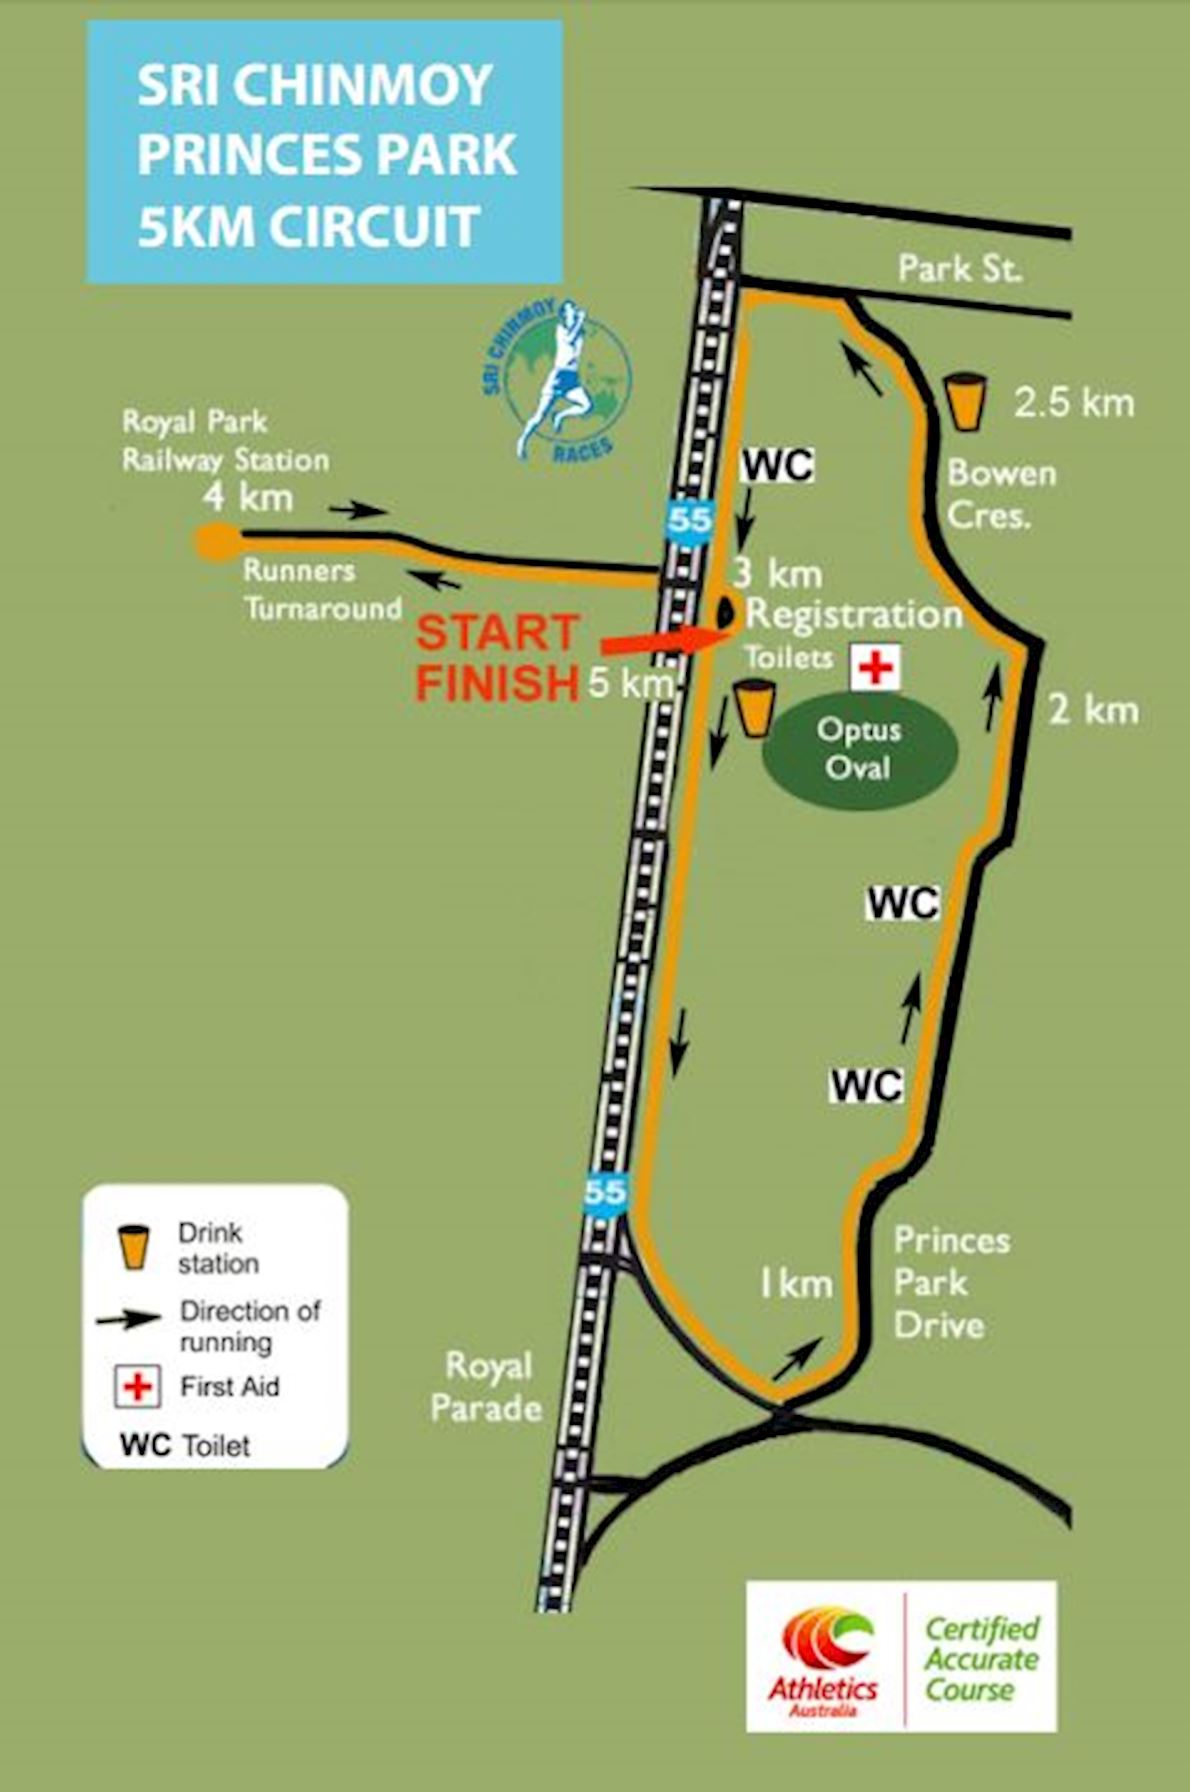 Sri Chinmoy Princes Park Winter Running Festival Route Map